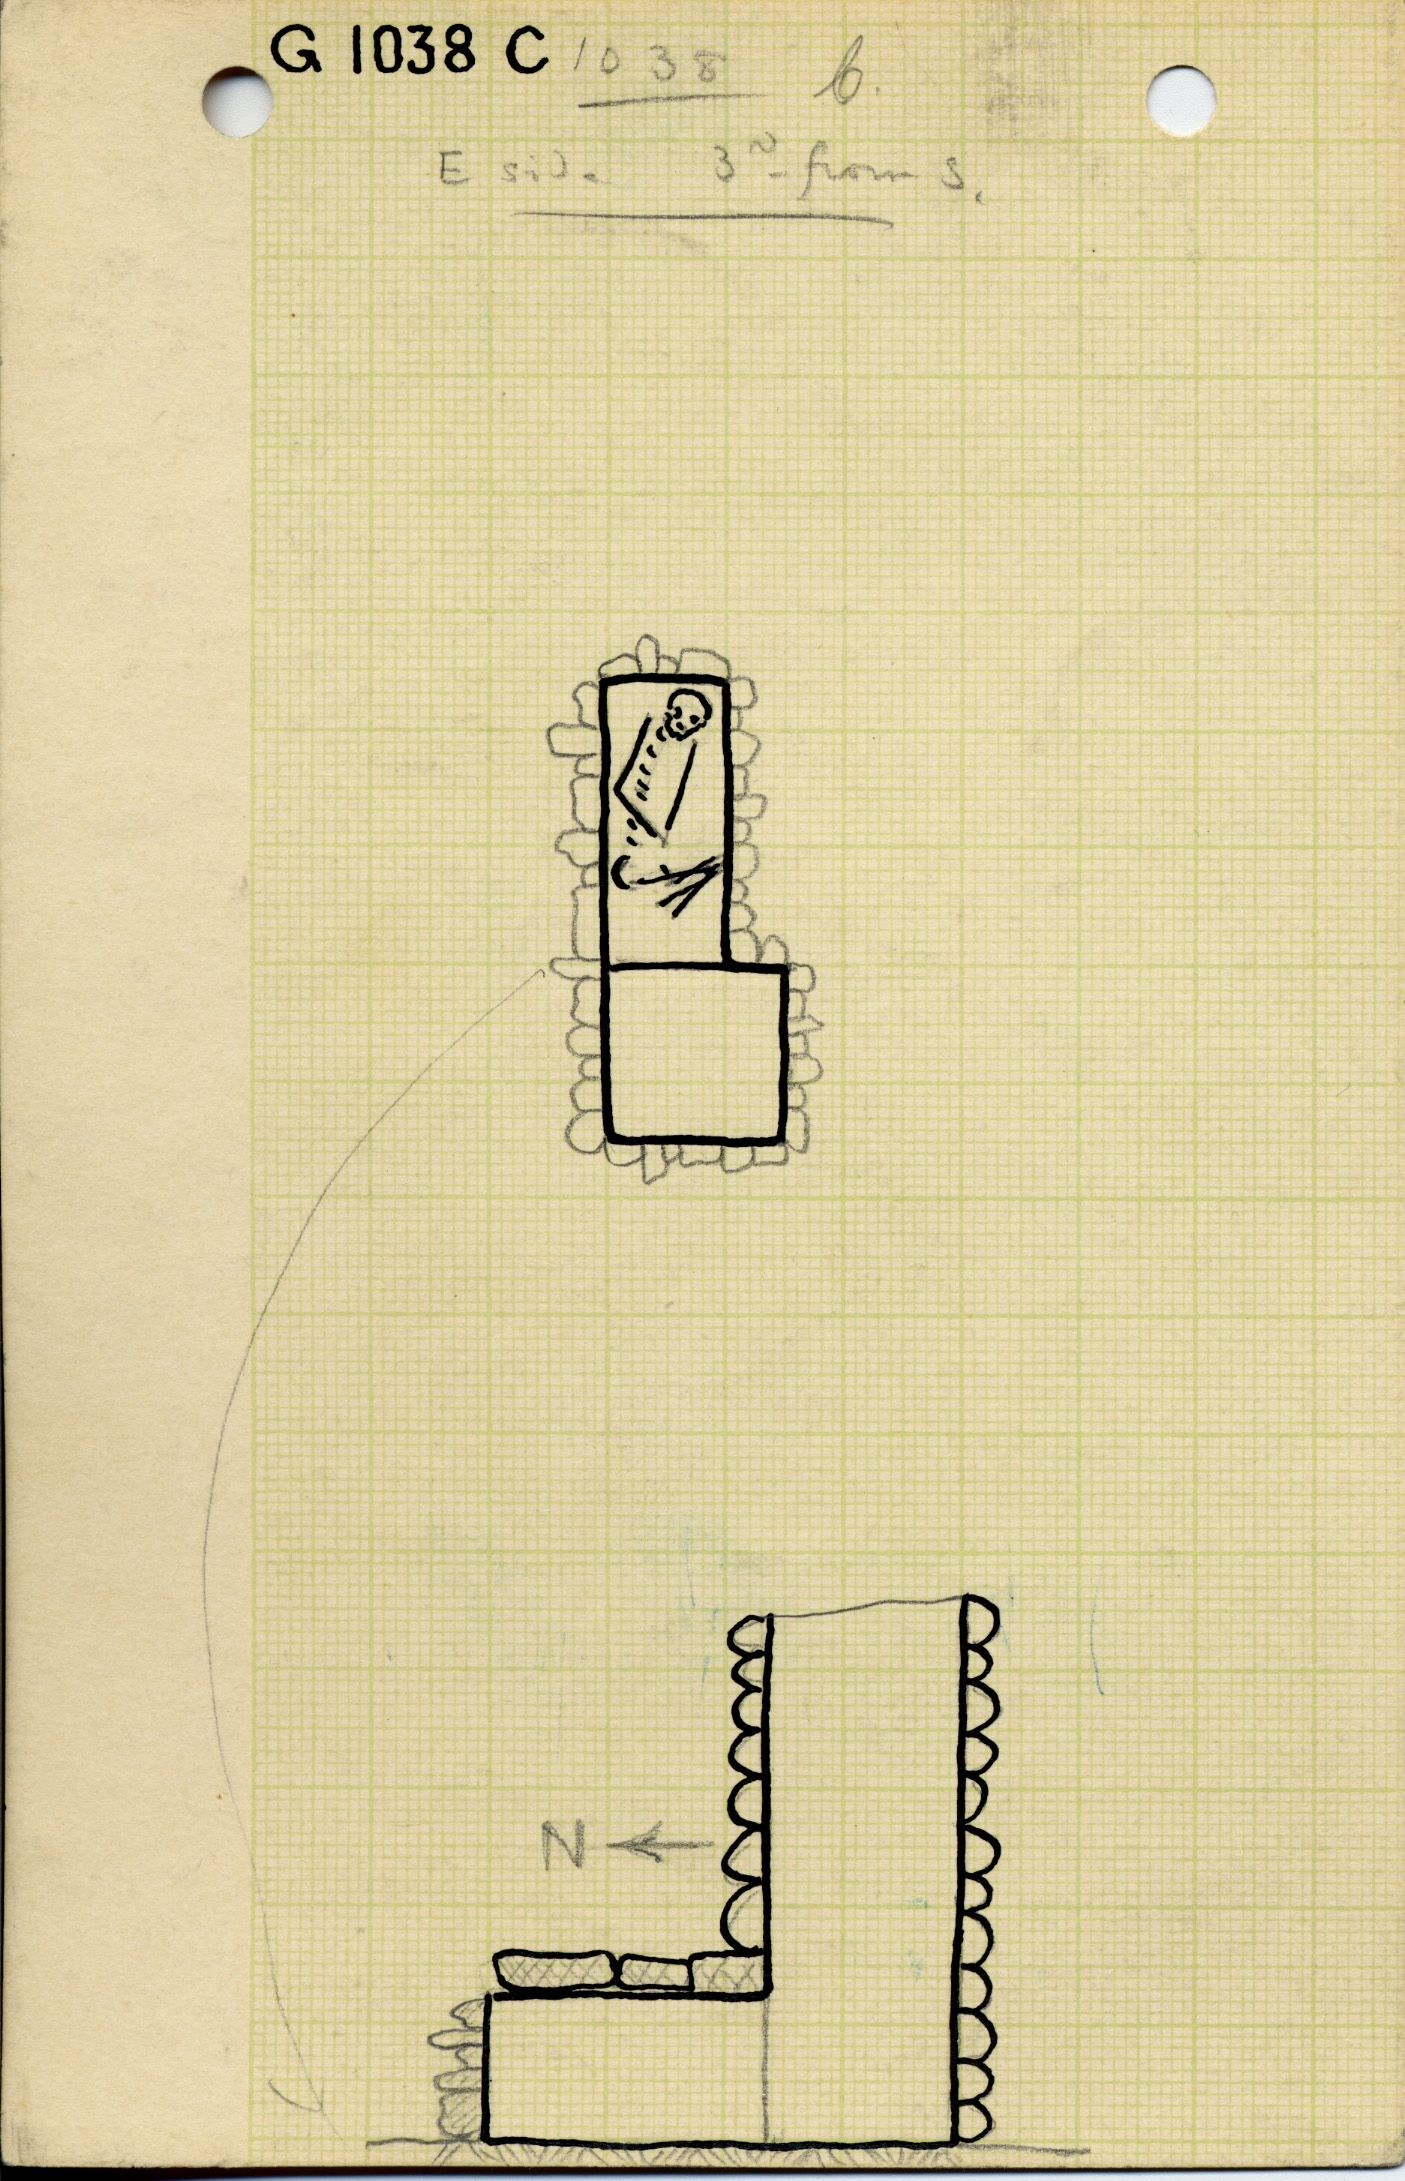 Maps and plans: G 1038, Shaft C